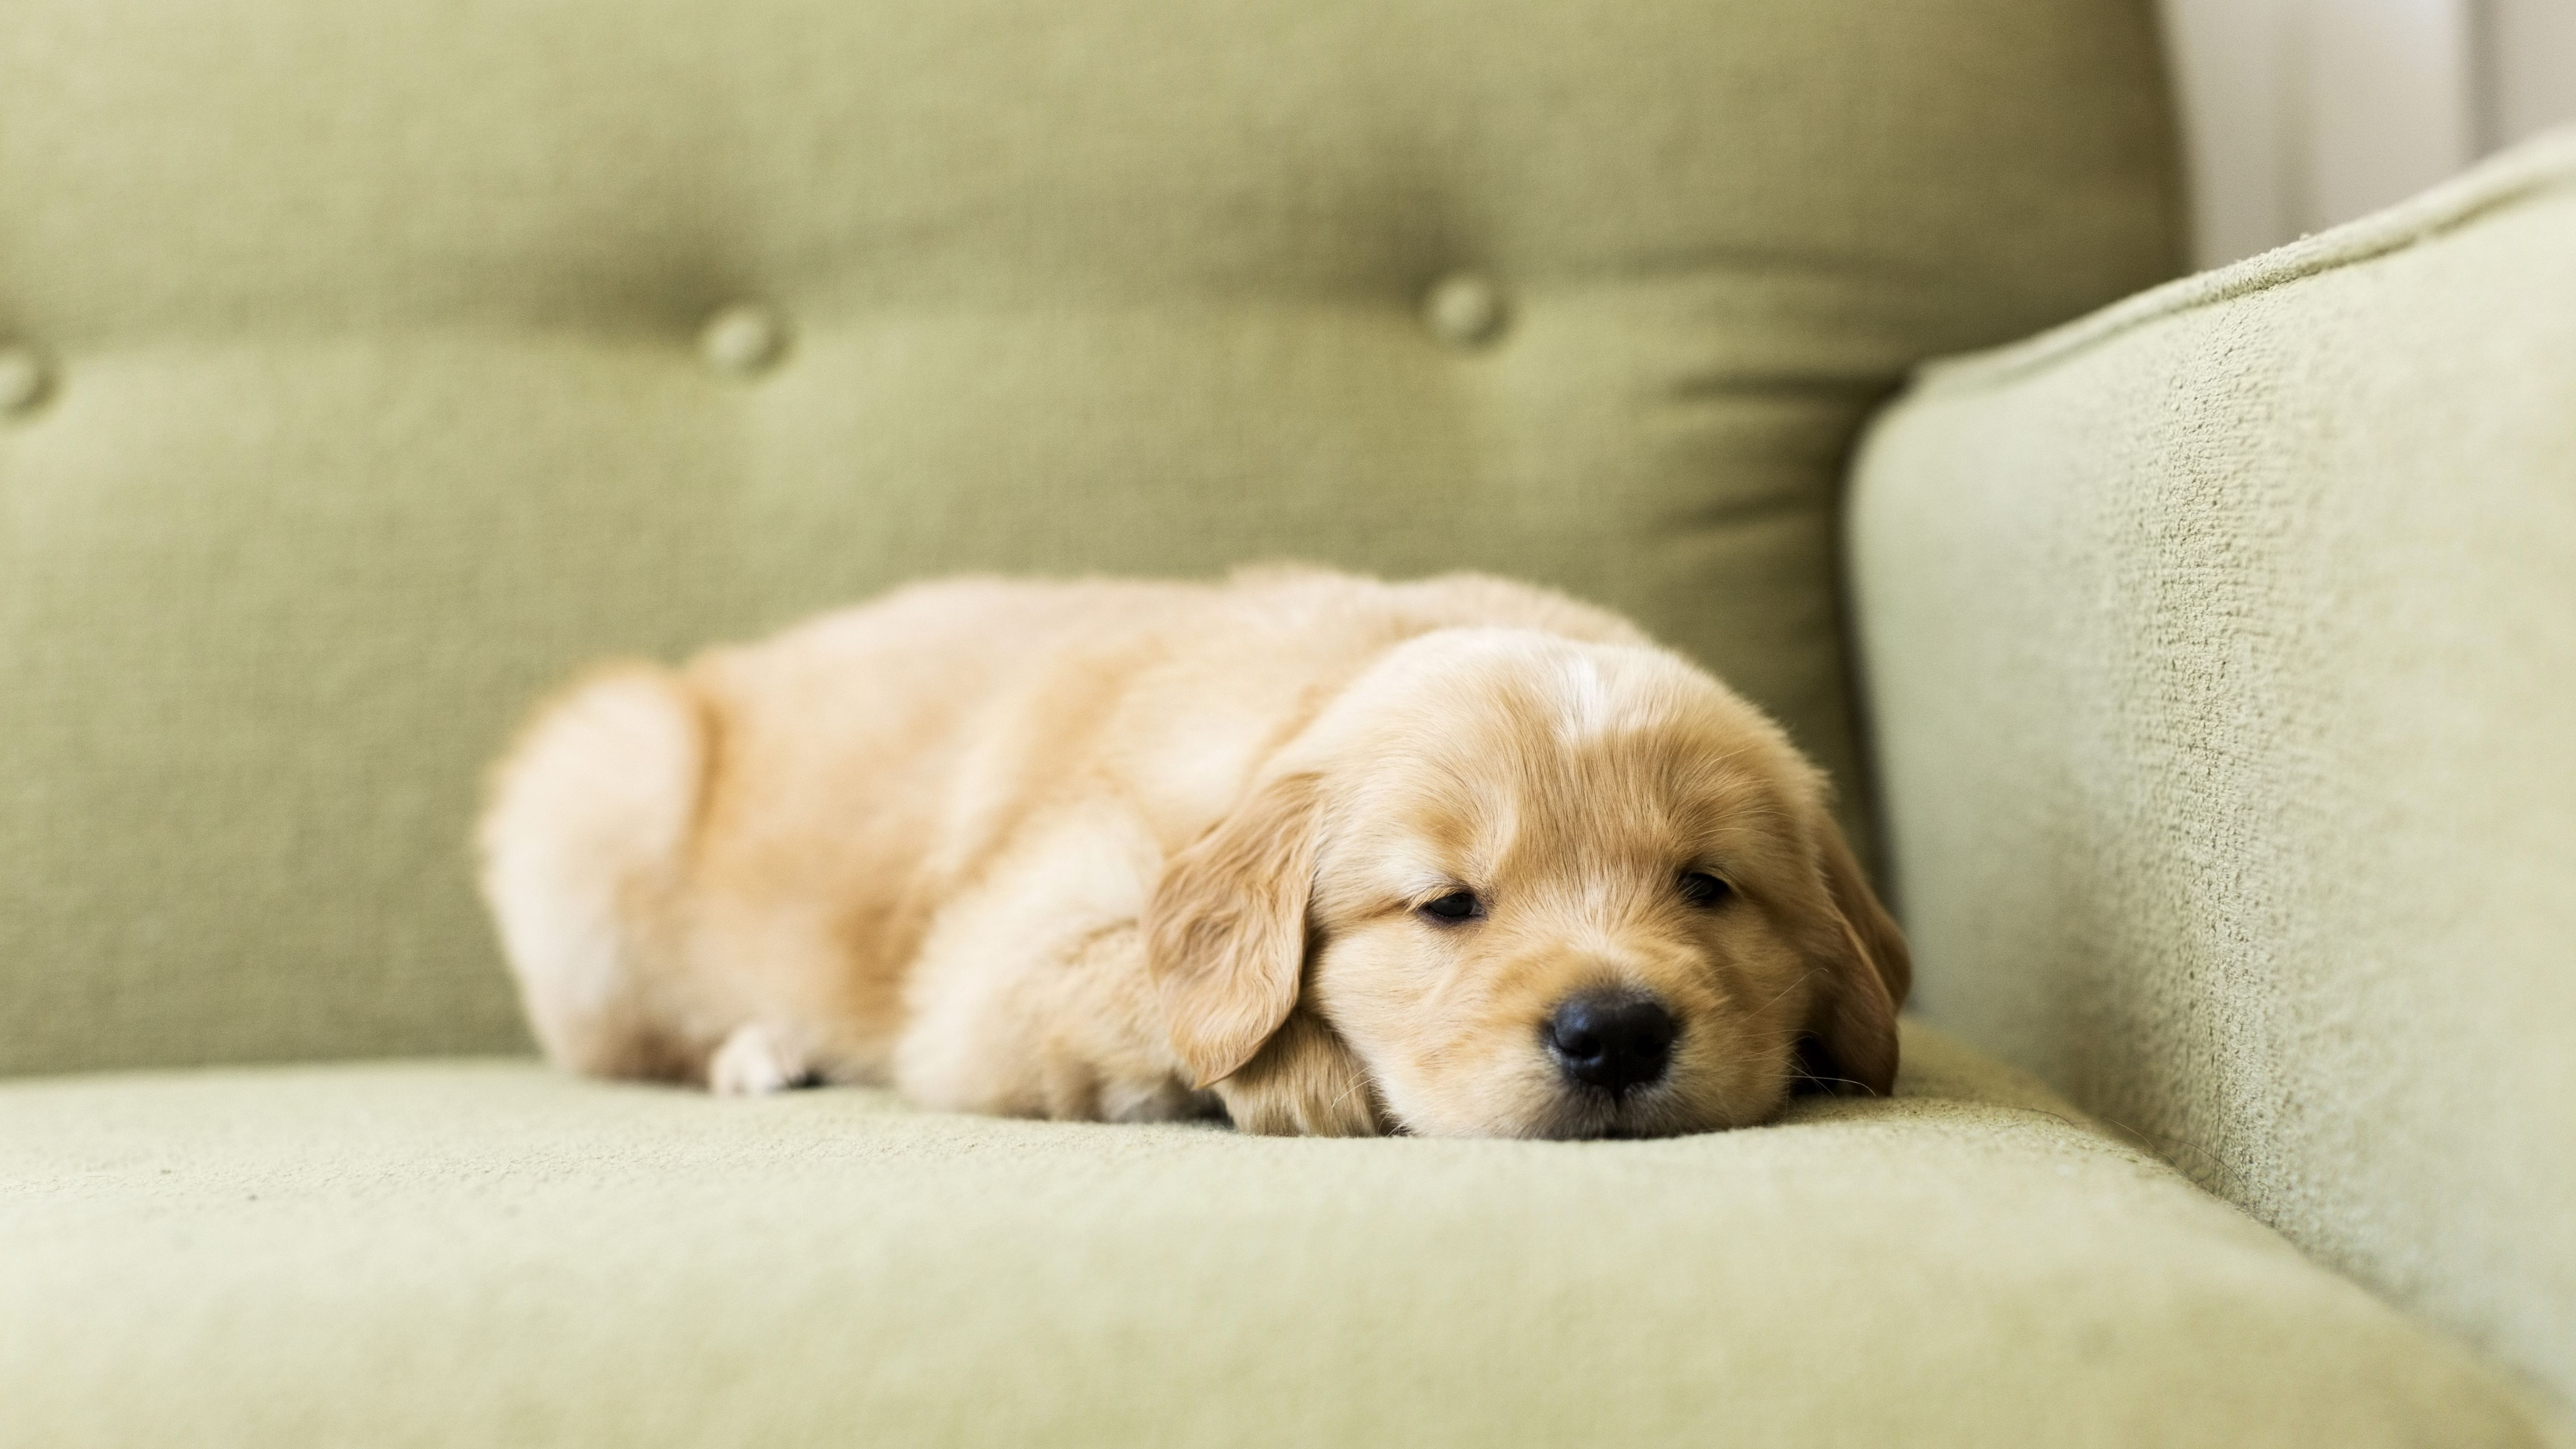 Building A Routine With Your New Puppy